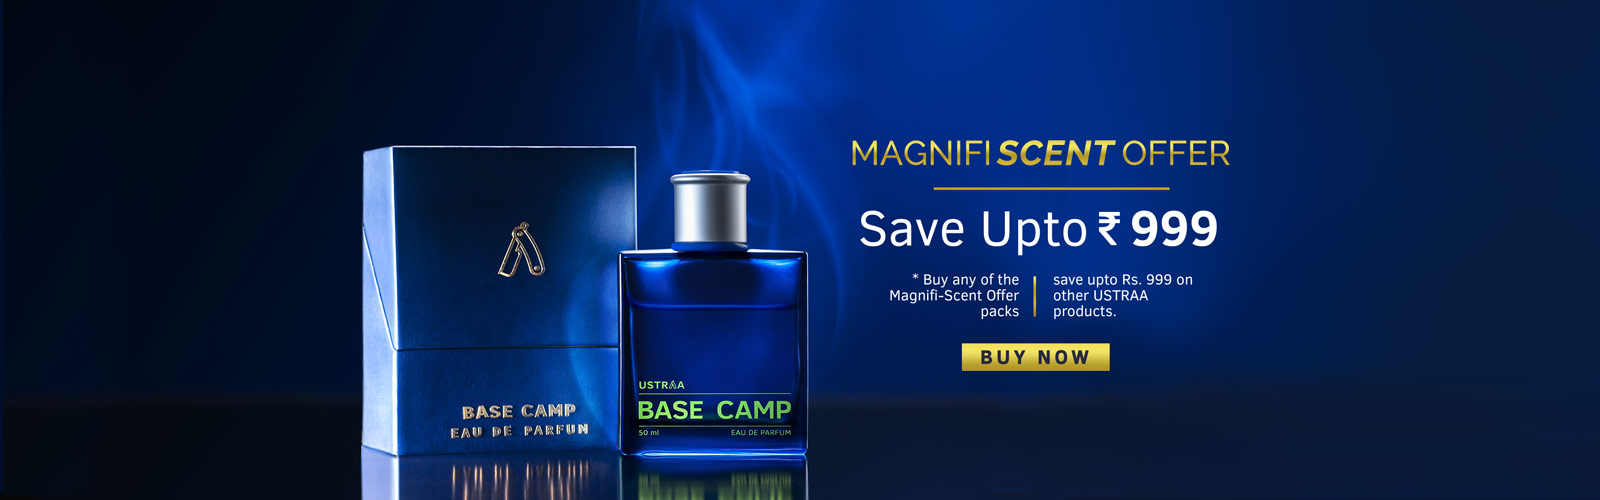 Magnifi-Scent Base Camp